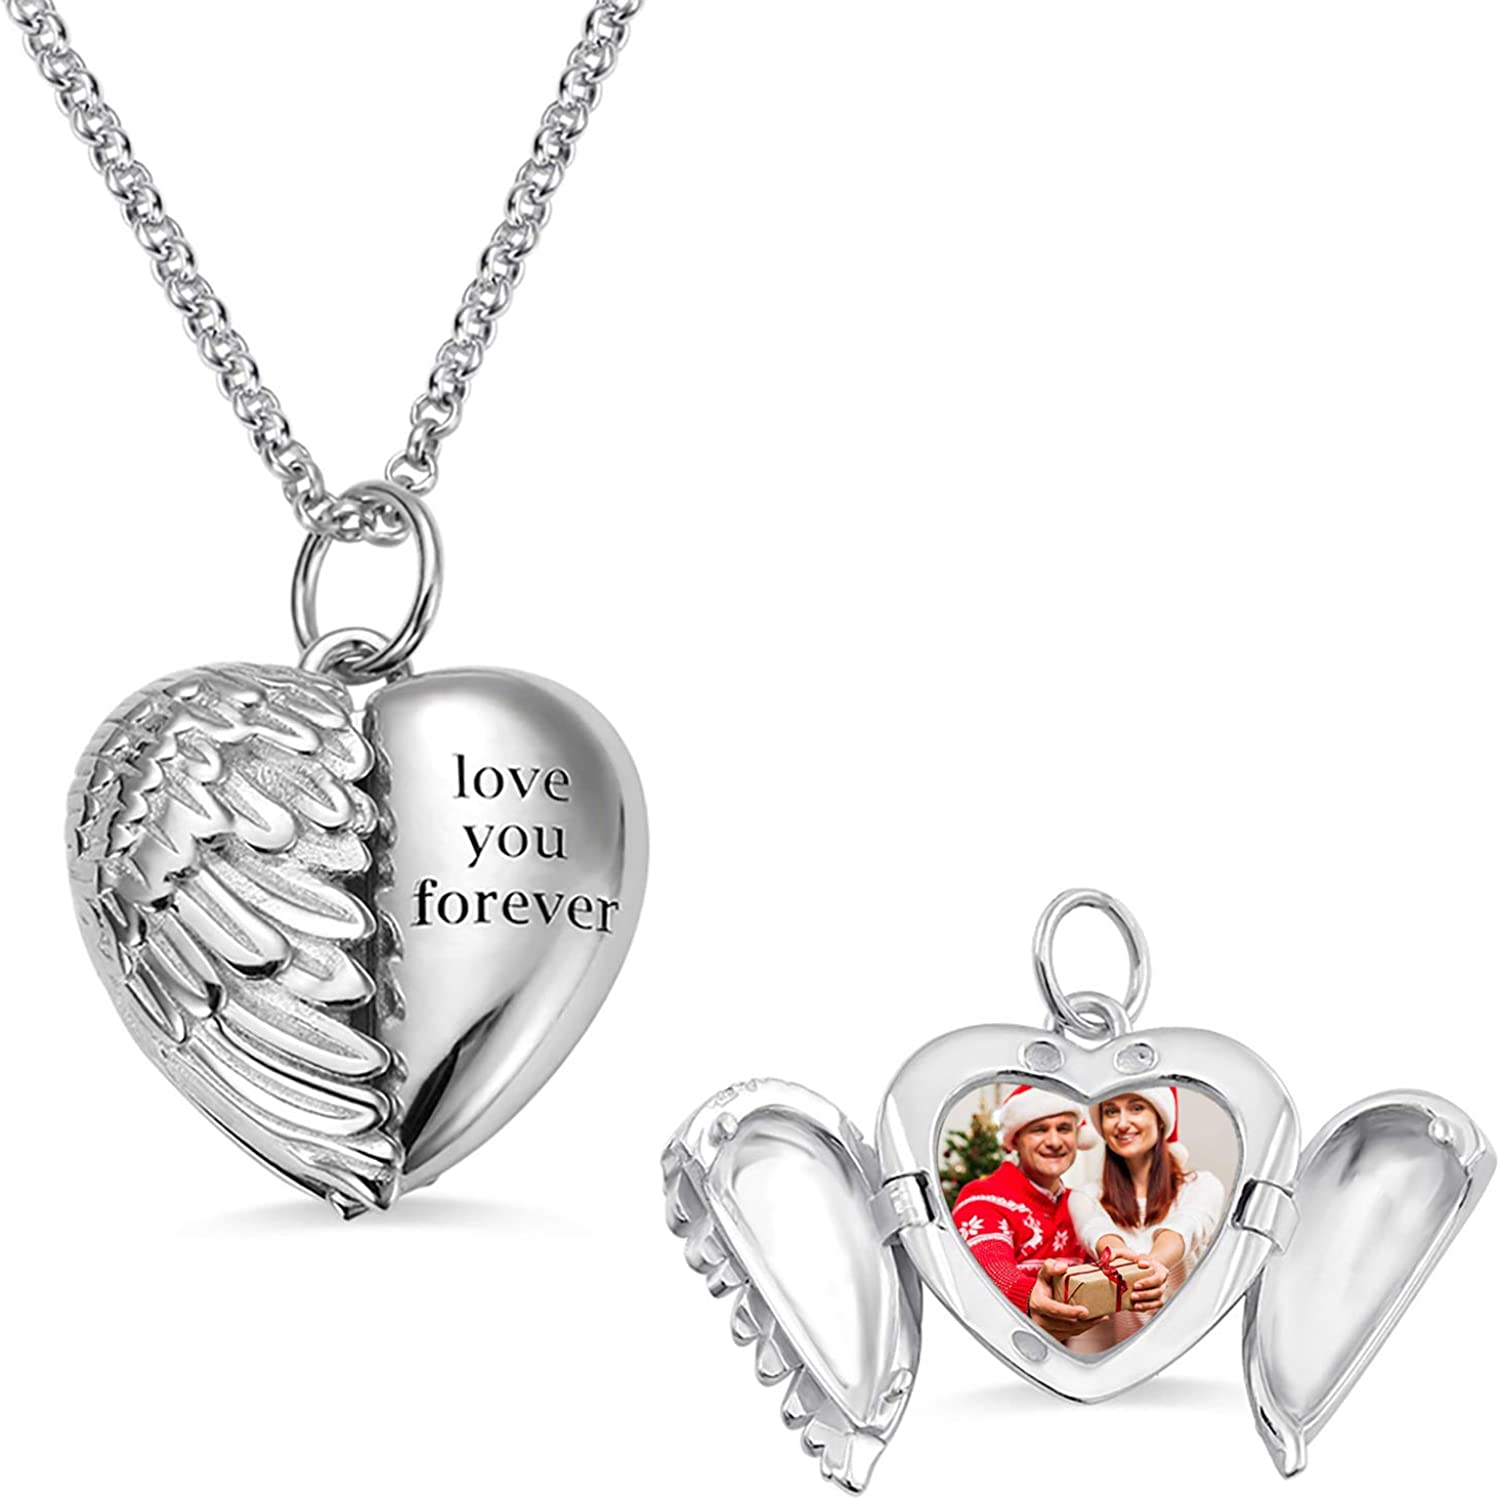 Heart Max 59% OFF Shaped Photo Box Customized Carved Necklace Text Max 57% OFF